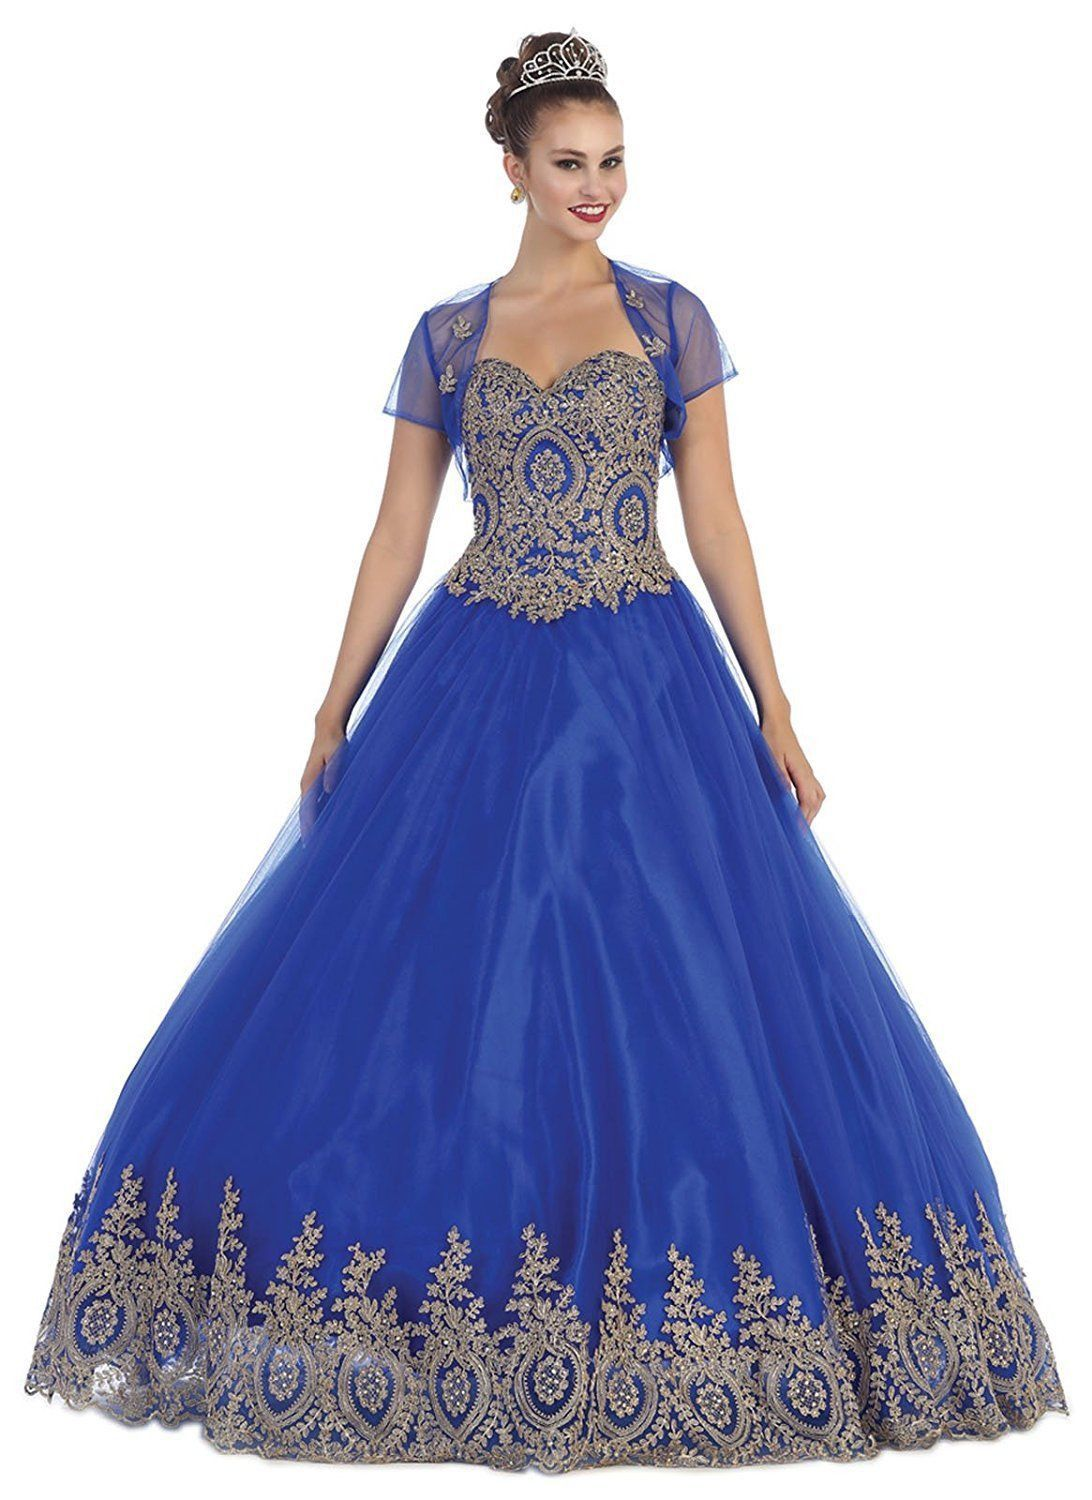 Thedressoutlet long prom dress formal quinceanera ball gown